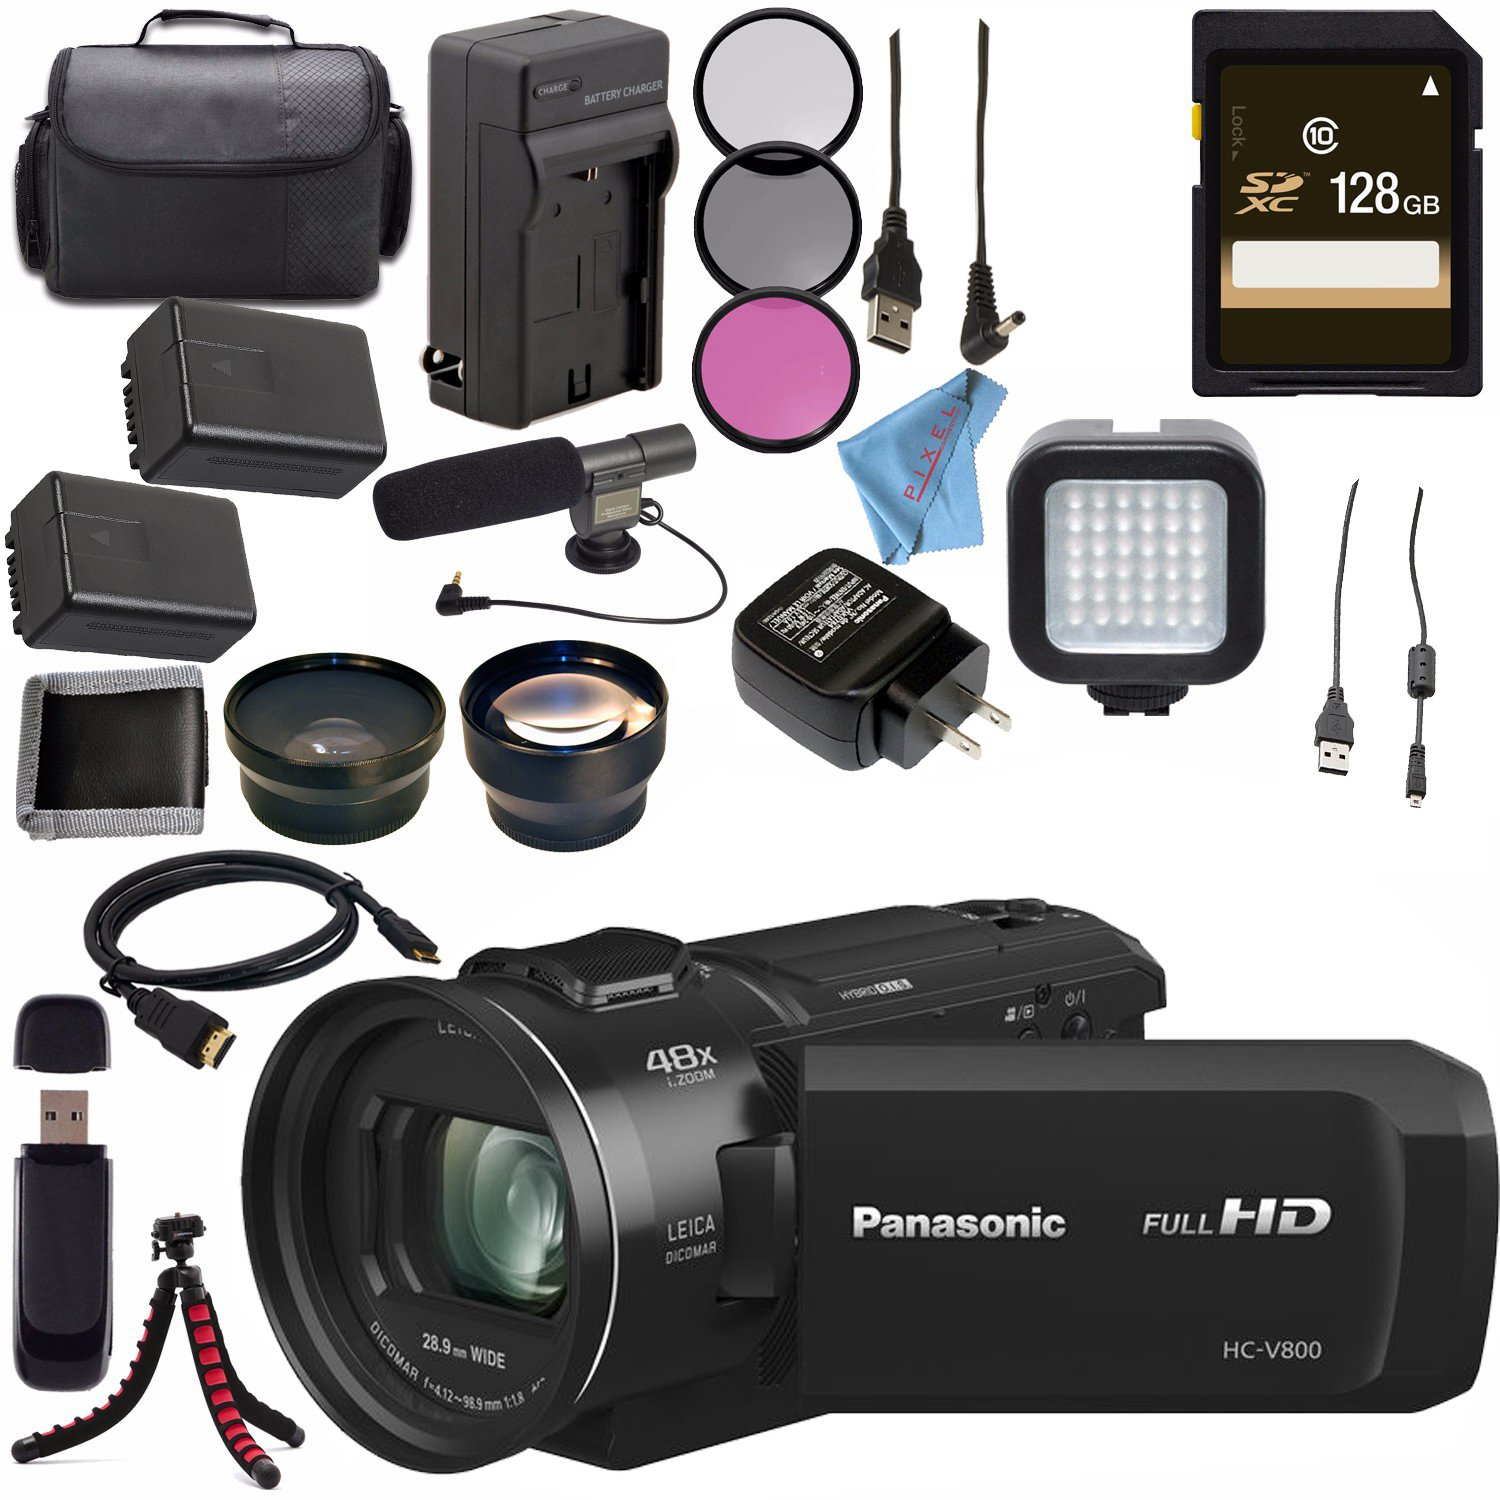 Panasonic HC-V800 HC-V800K Full HD Camcorder + Replacement Lithium Ion Battery + External Rapid Charger + 128GB SDXC Card + 62mm 3 Piece Filter Kit + LED Light + Condenser Mic Bundle by Panasonic